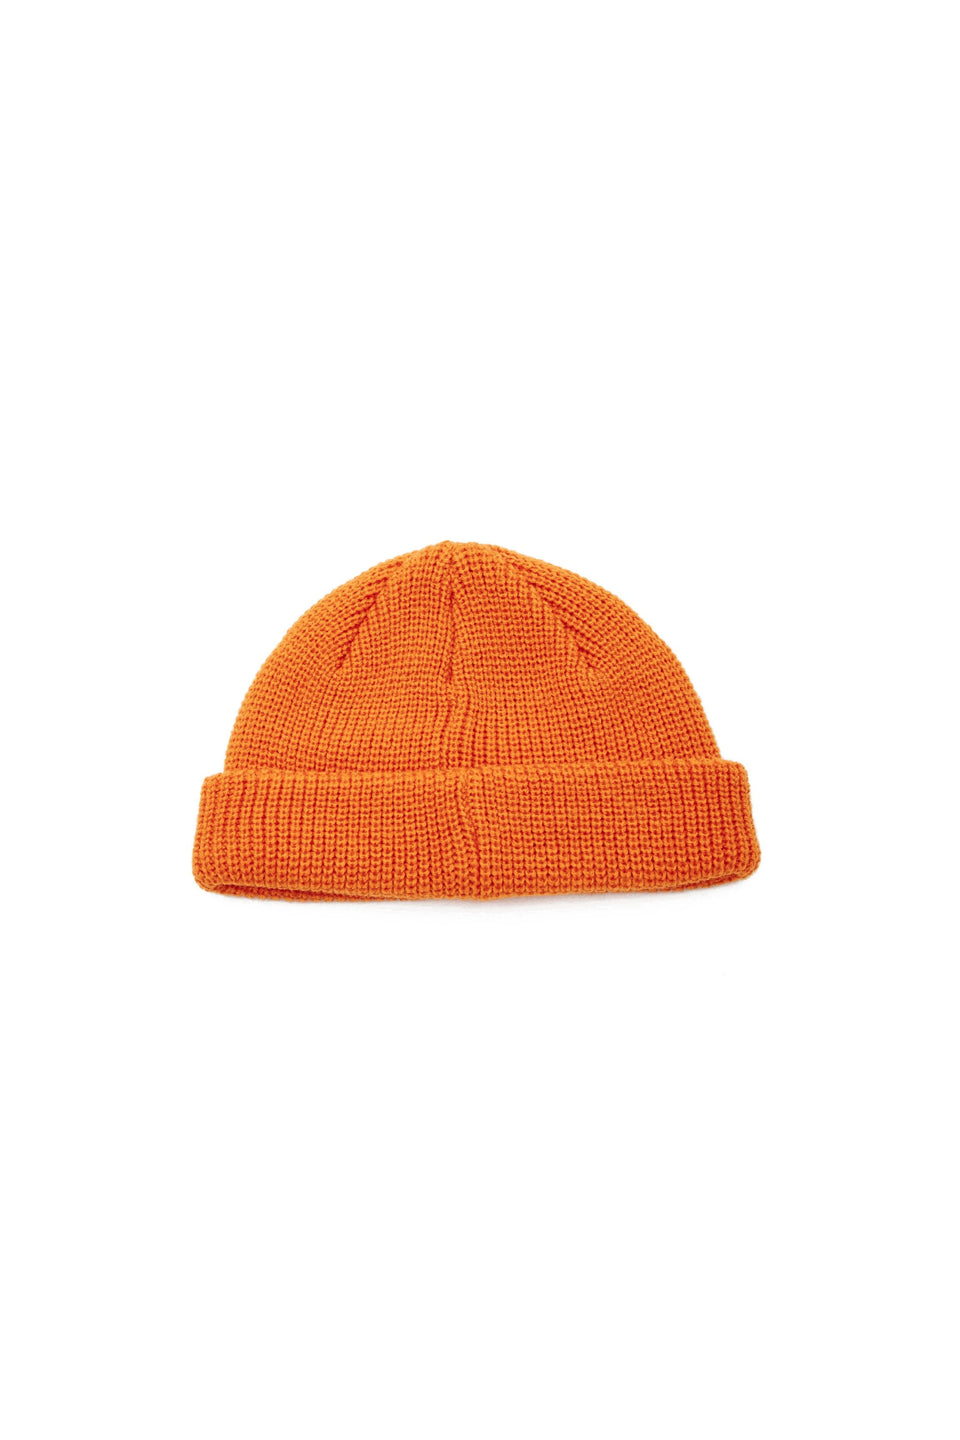 OBEY • Bonnet Micro Orange